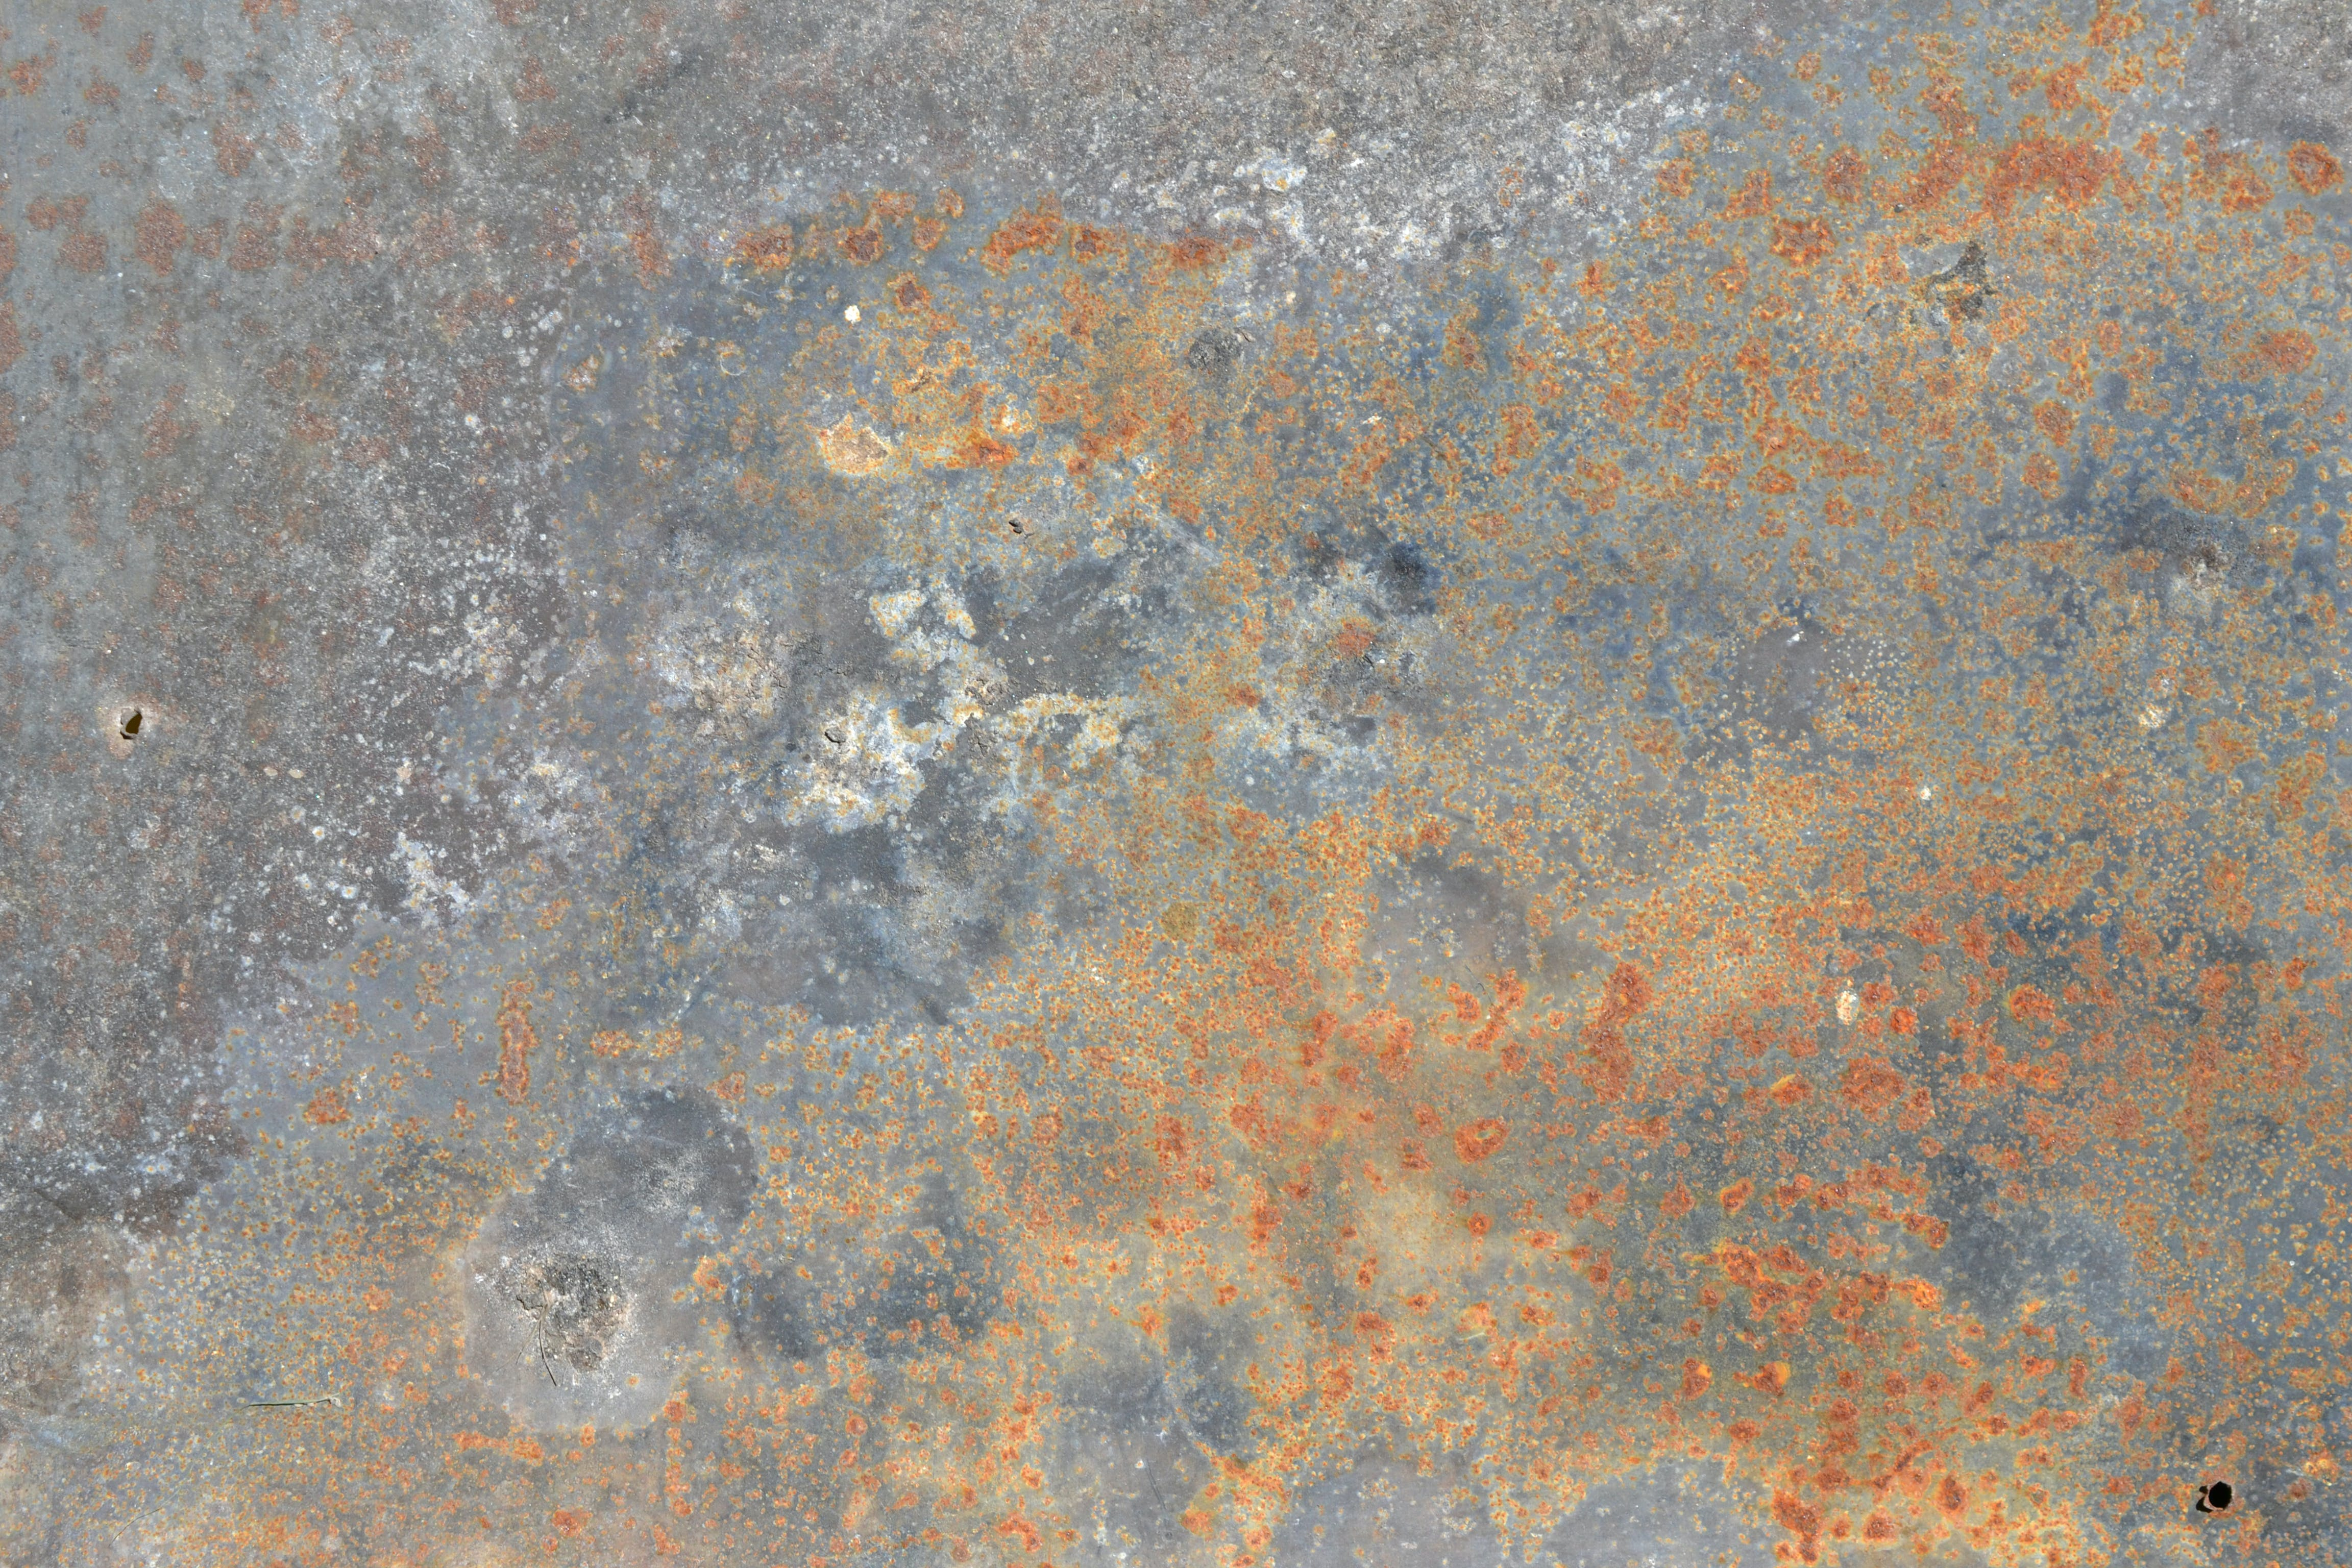 Free stock photo of texture, surface, steel, rusty